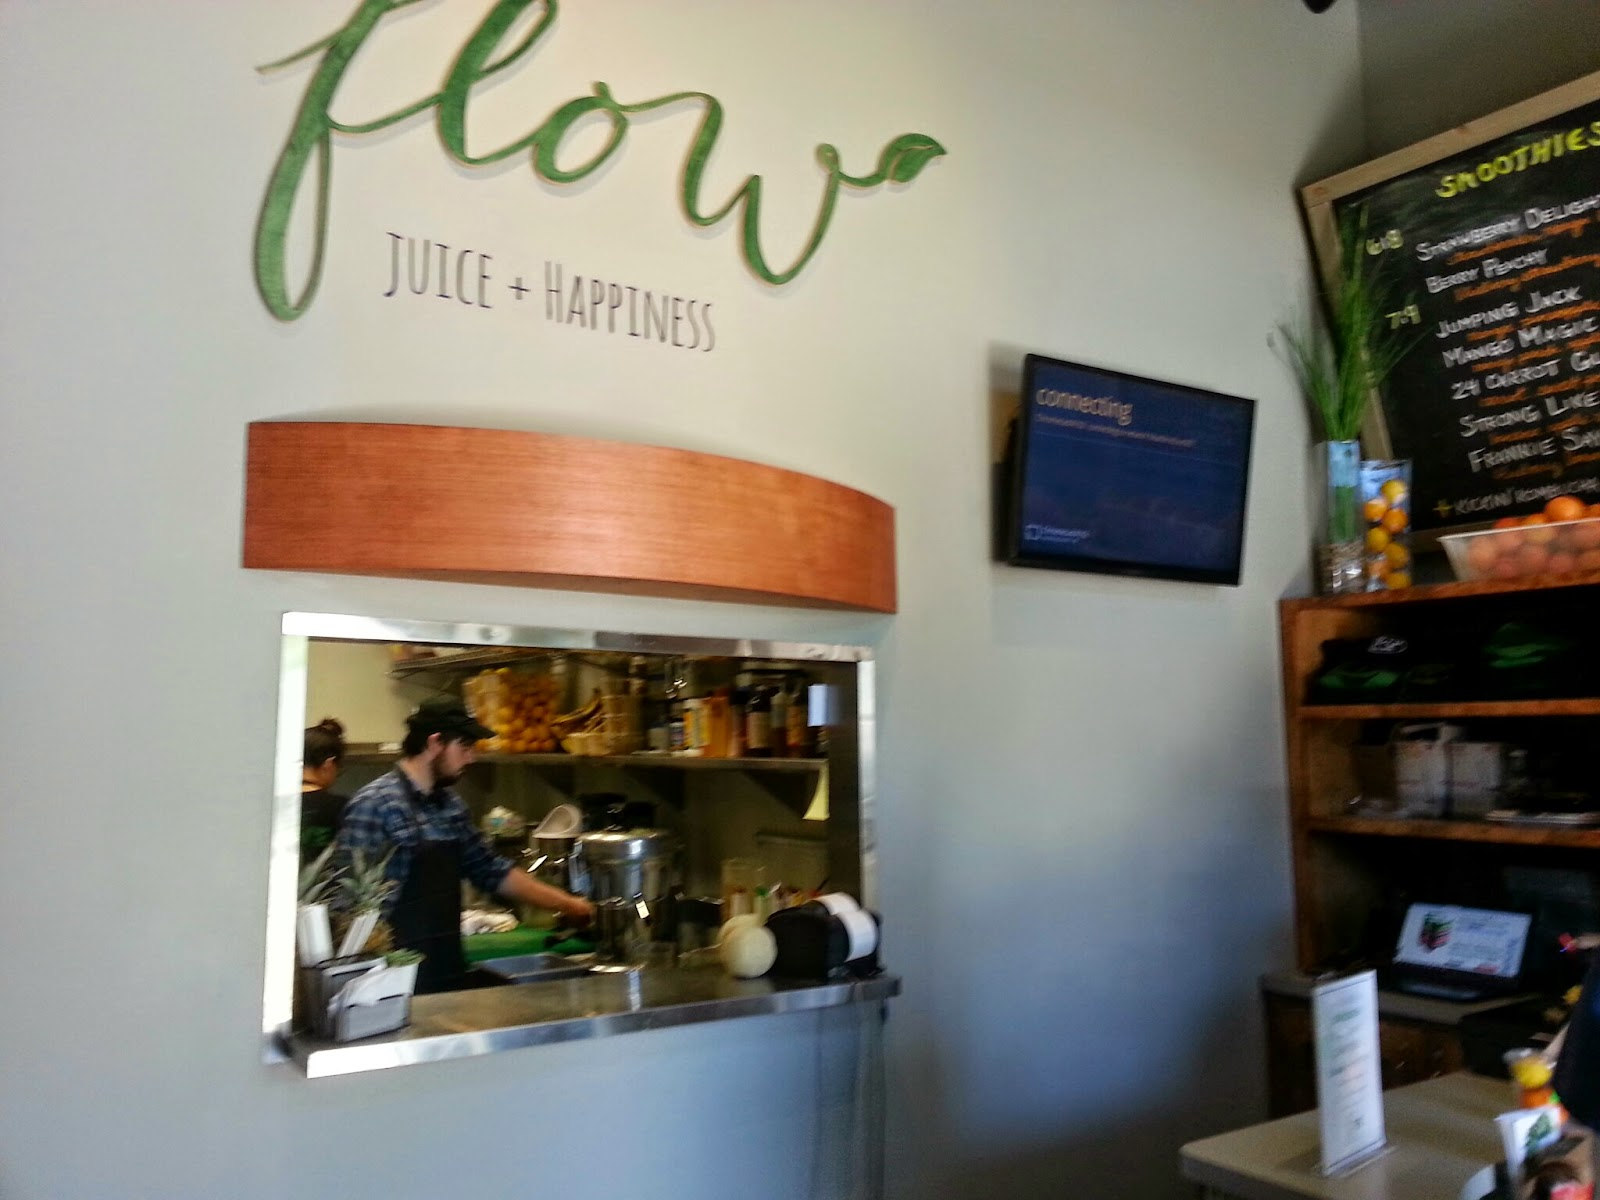 Not Too Long Ago, I Talked About My Experience With Juicing In The Context  Of A Visit To Snap Kitchen. I Know Several Folks Who Love Juicing, ...